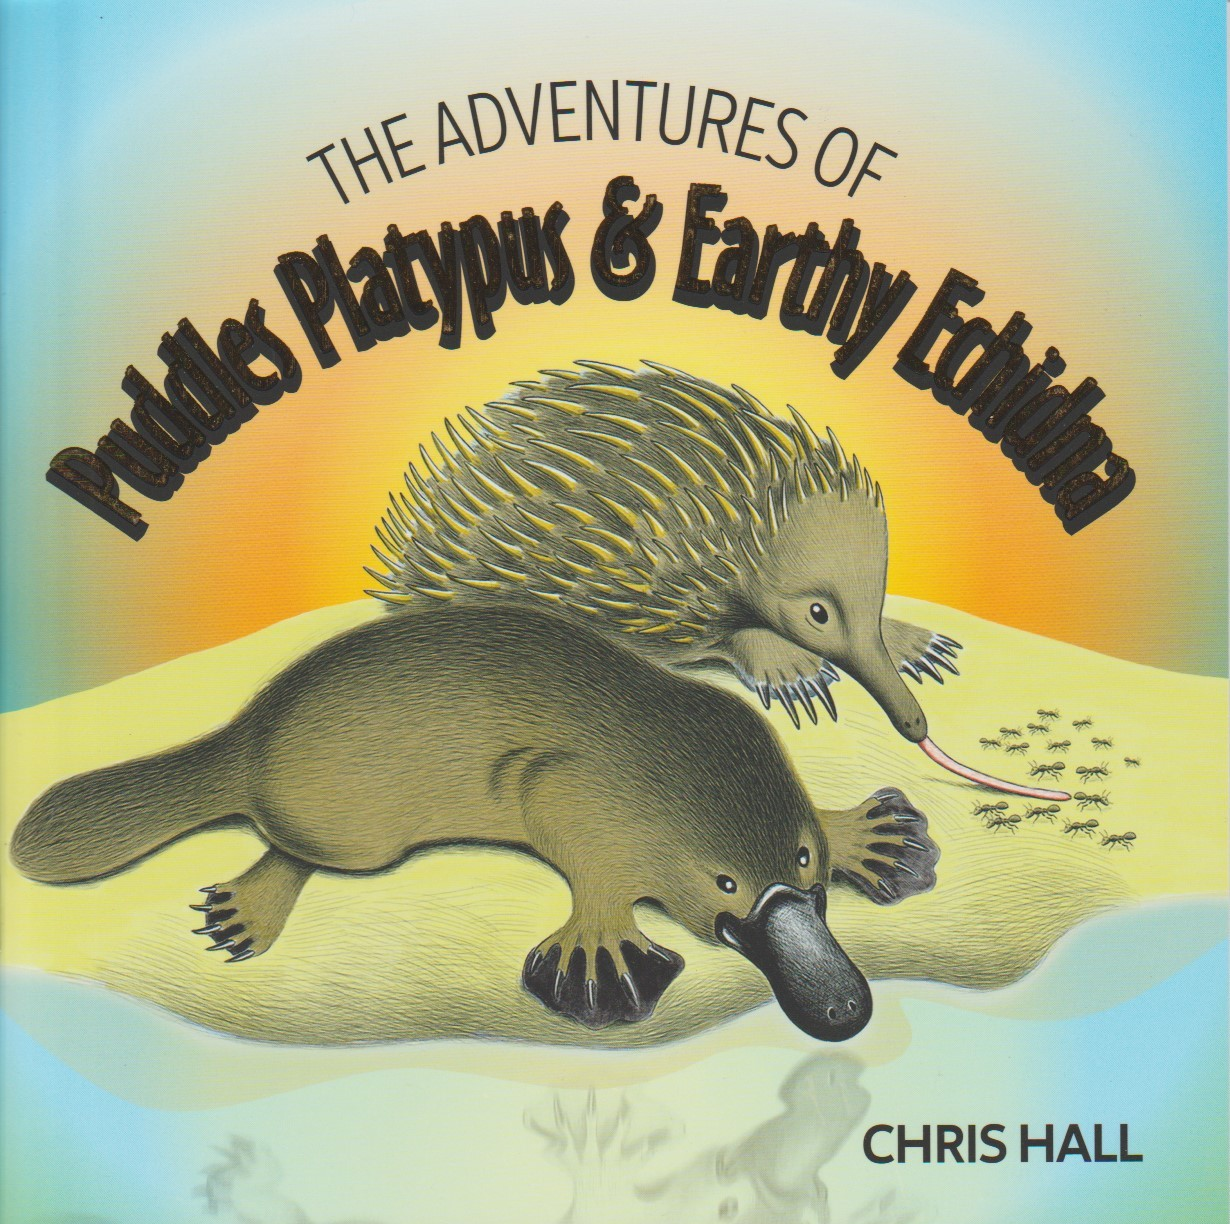 The Adventures of Puddles Platypus & Earthy Echidna